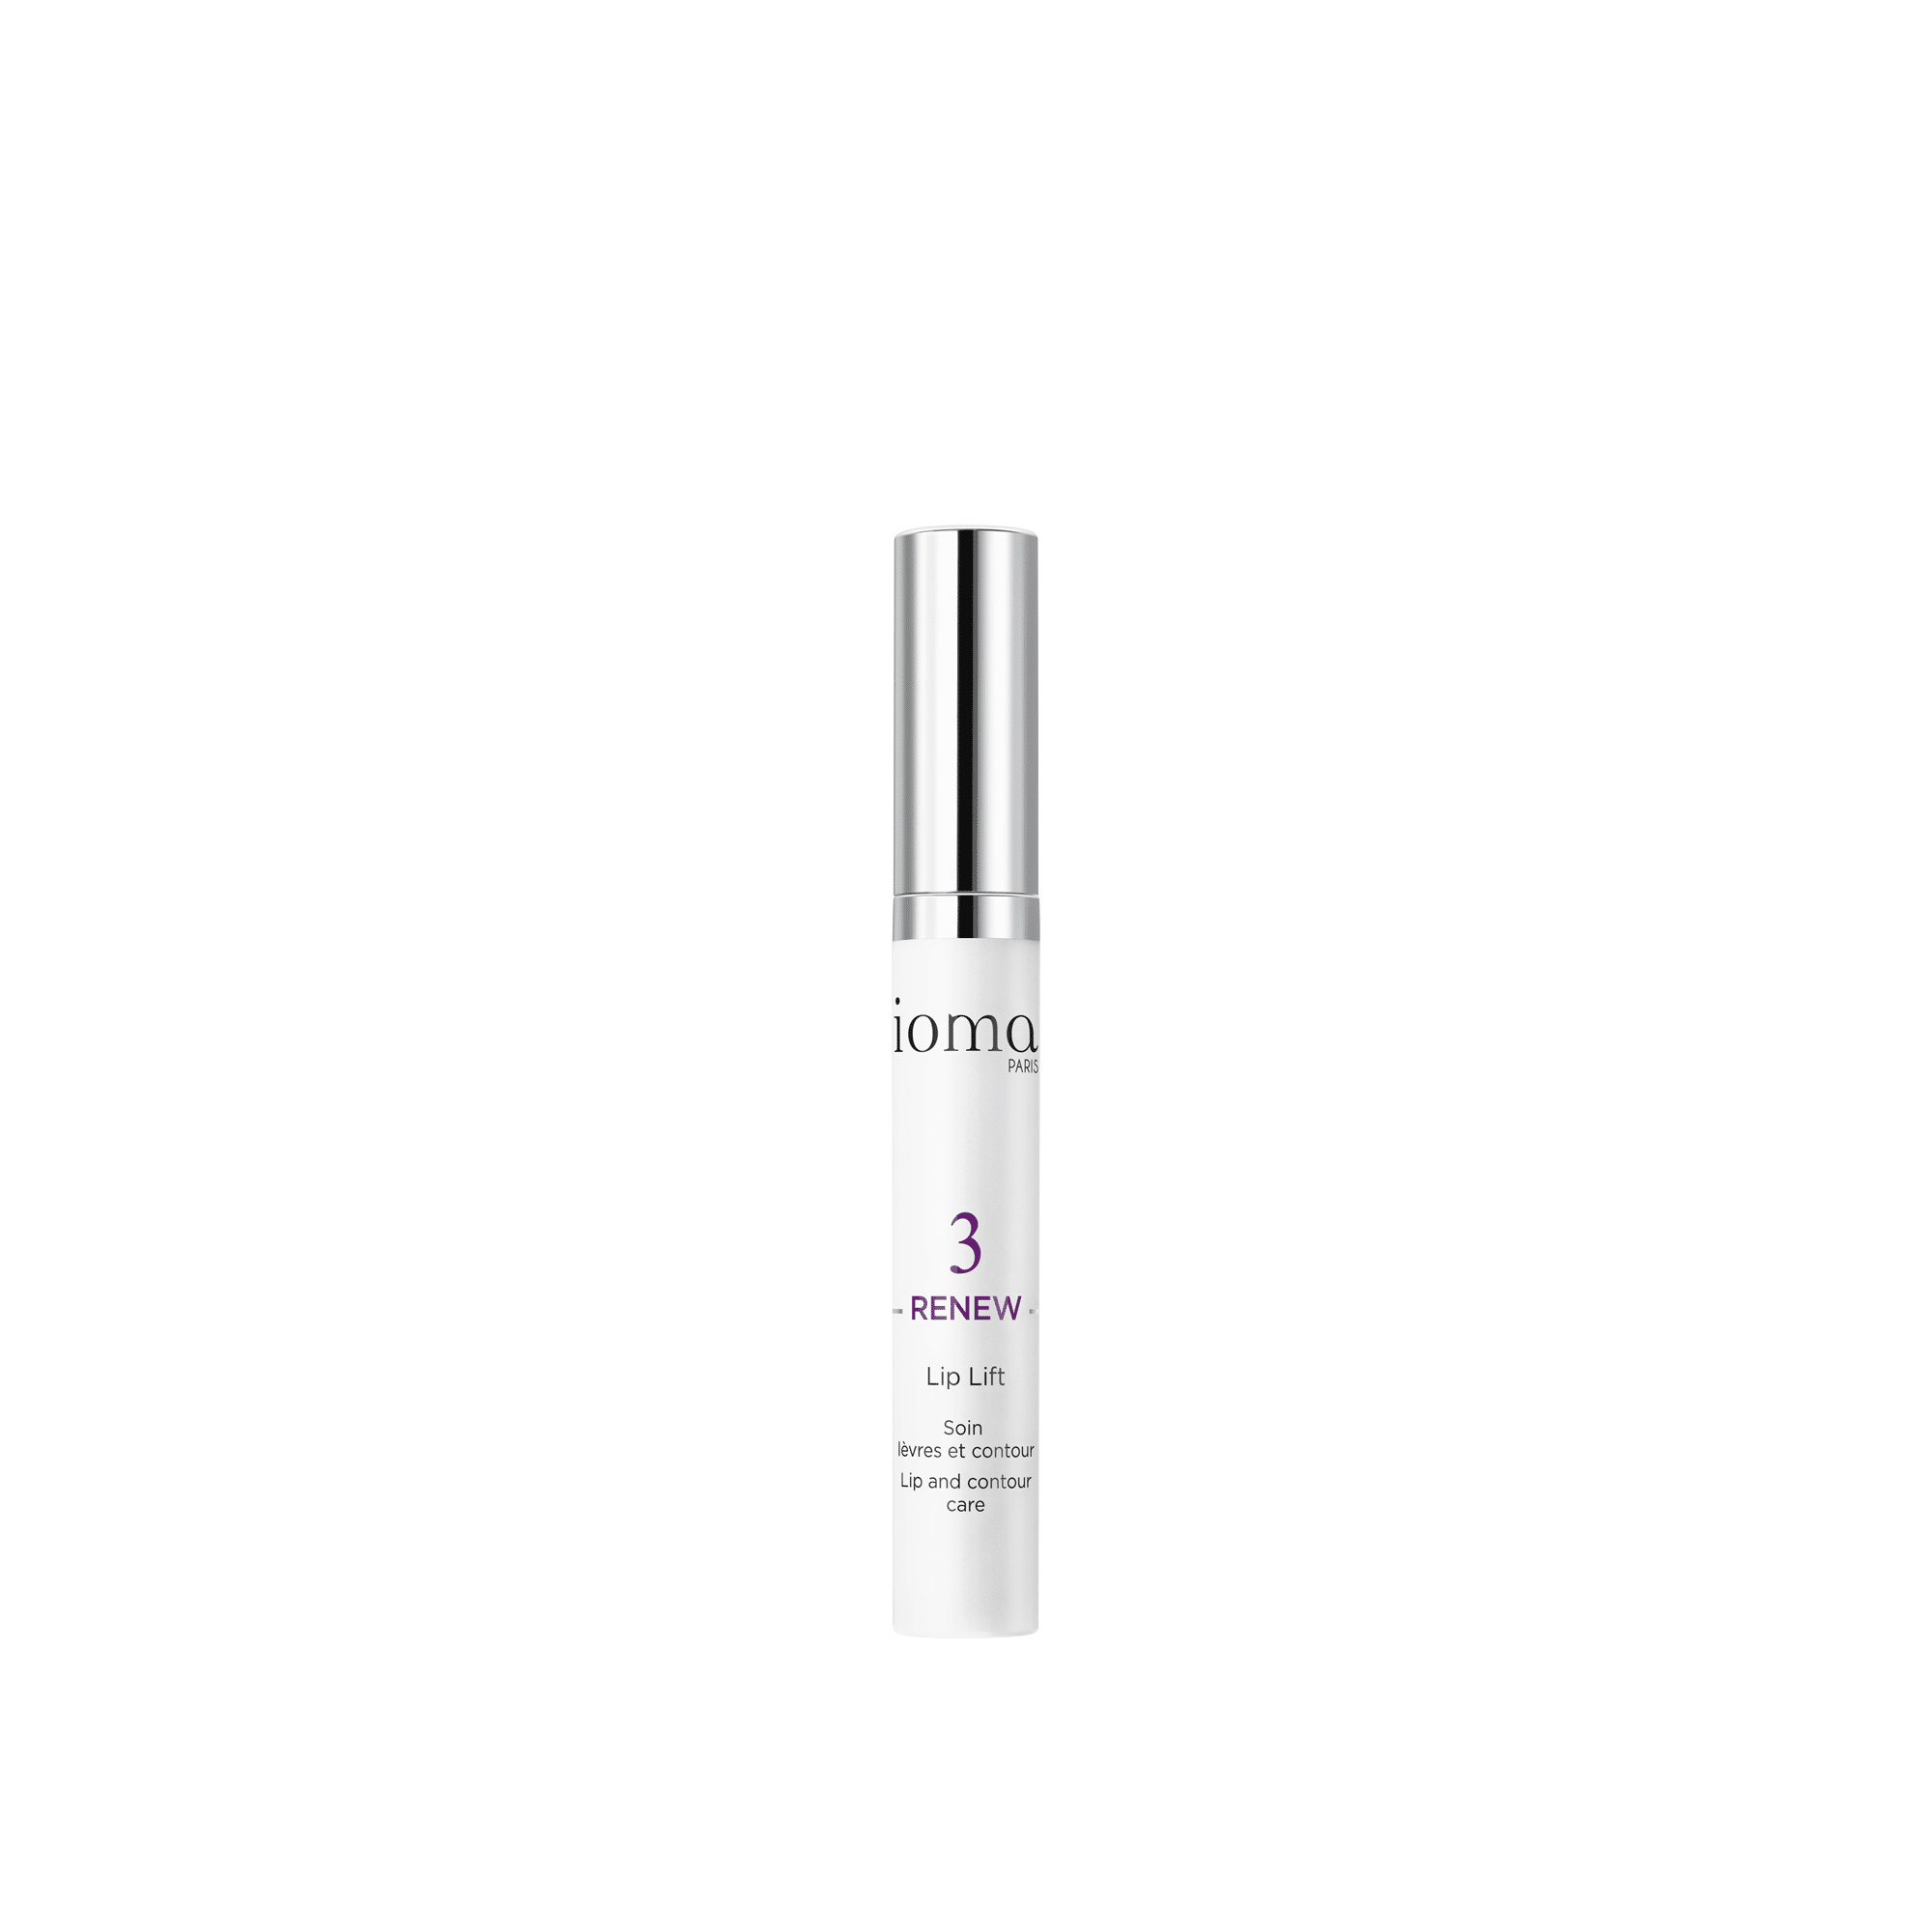 ioma-lip-lift-renew-face-care